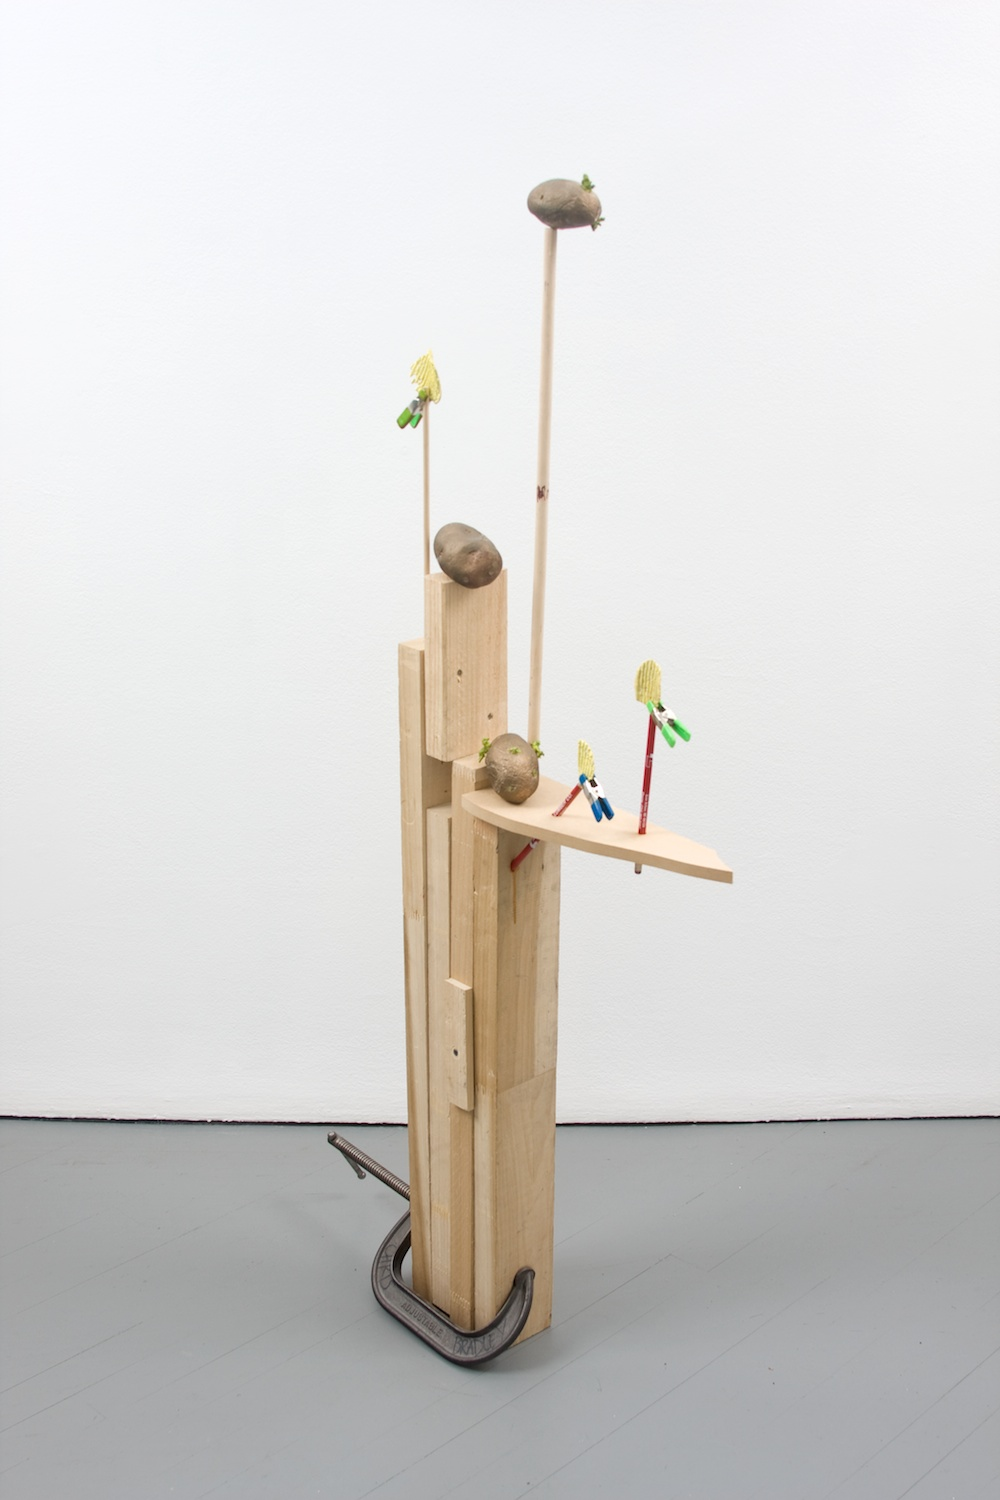 "Chris Bradley Target #2 2011 Cast bronze, paint, wood, clamps, and pencils 50 1/2"" x 21"" x 4"" CB007"